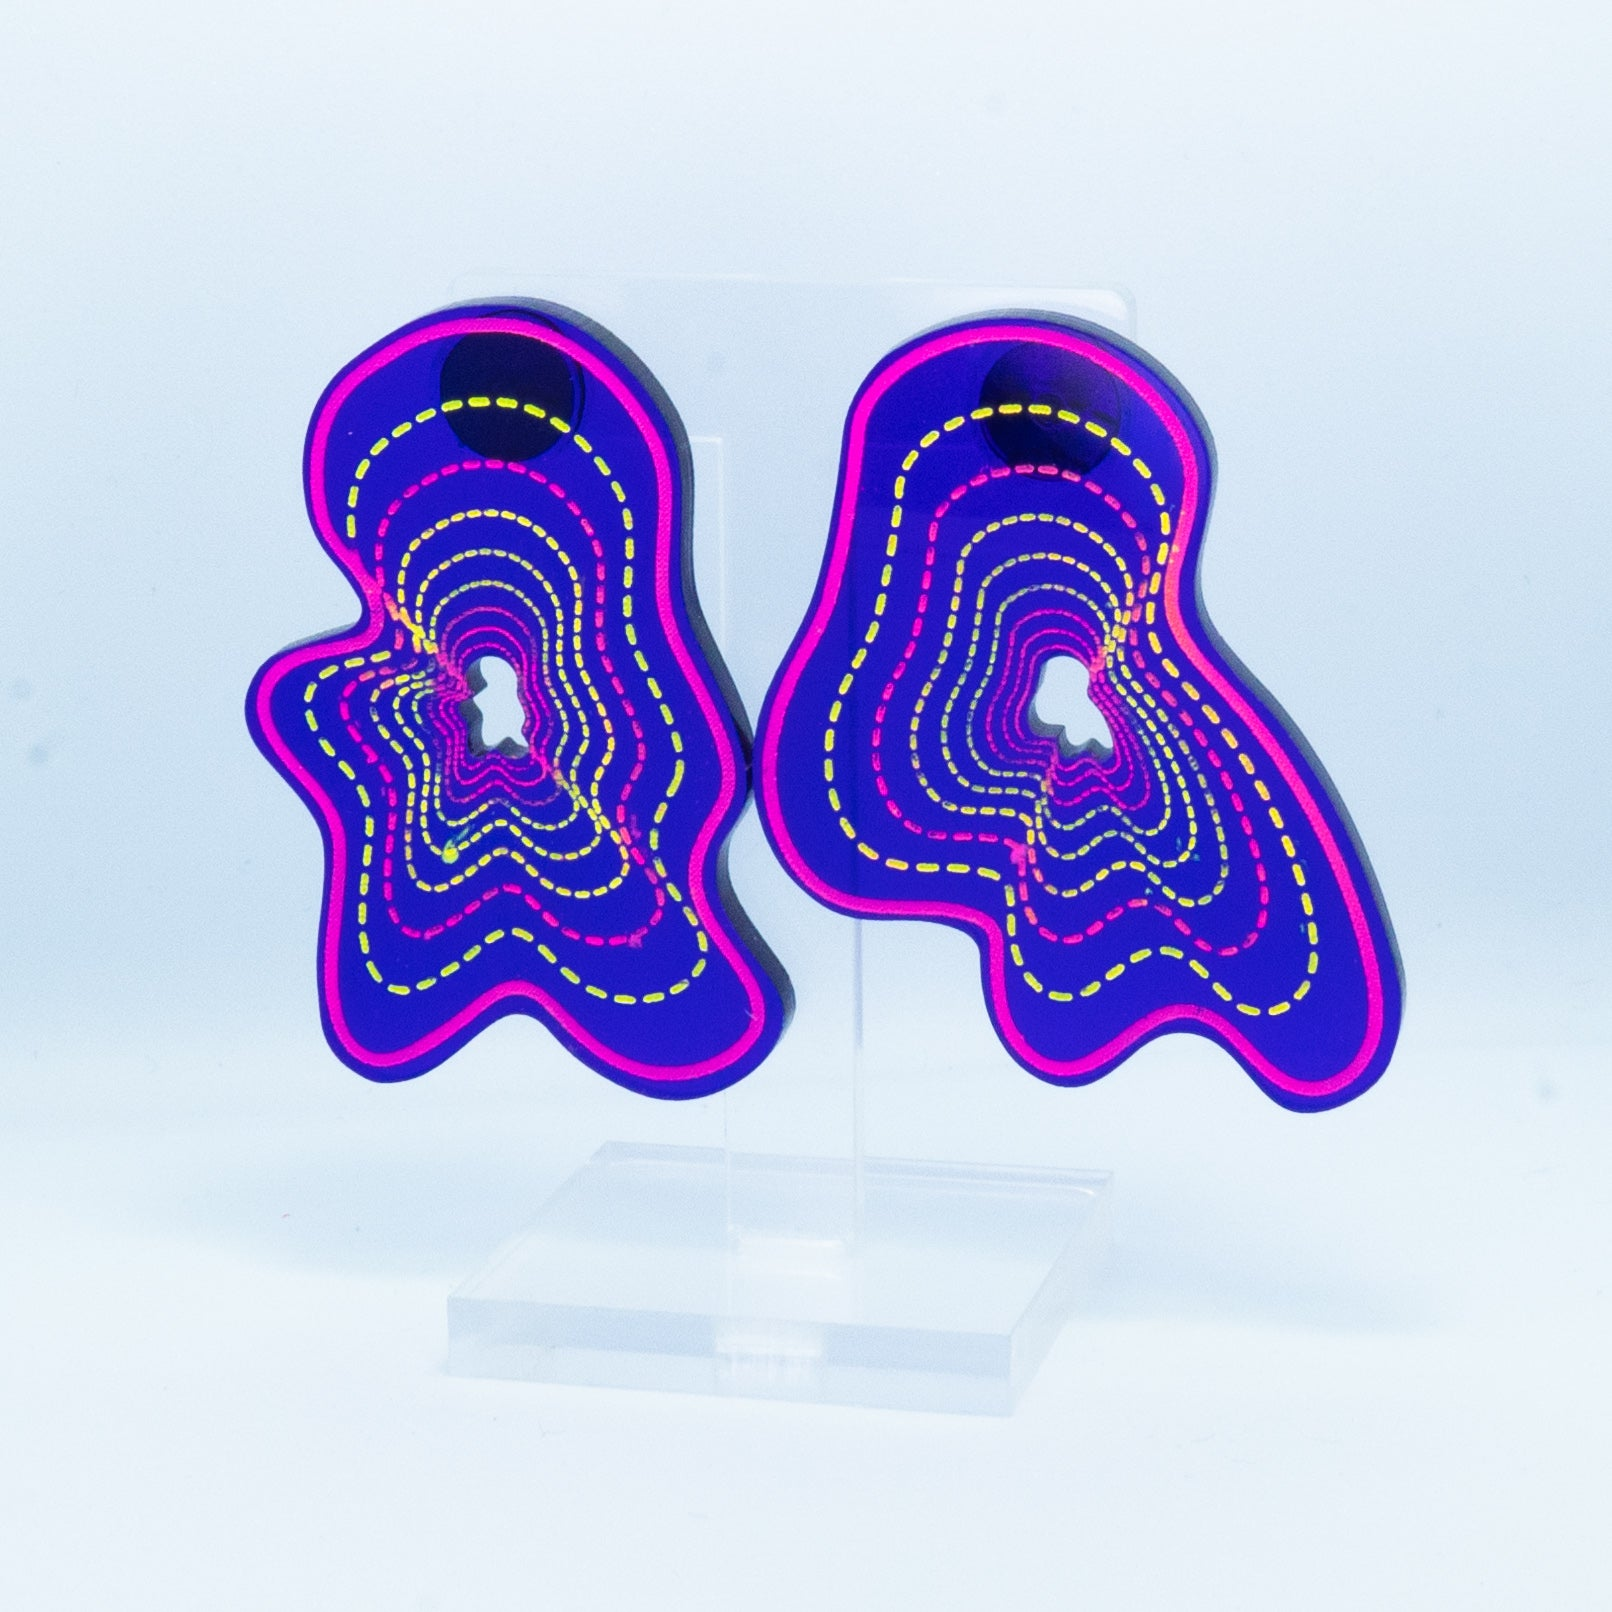 Vaporwave medium purple blob studs (pink outline)